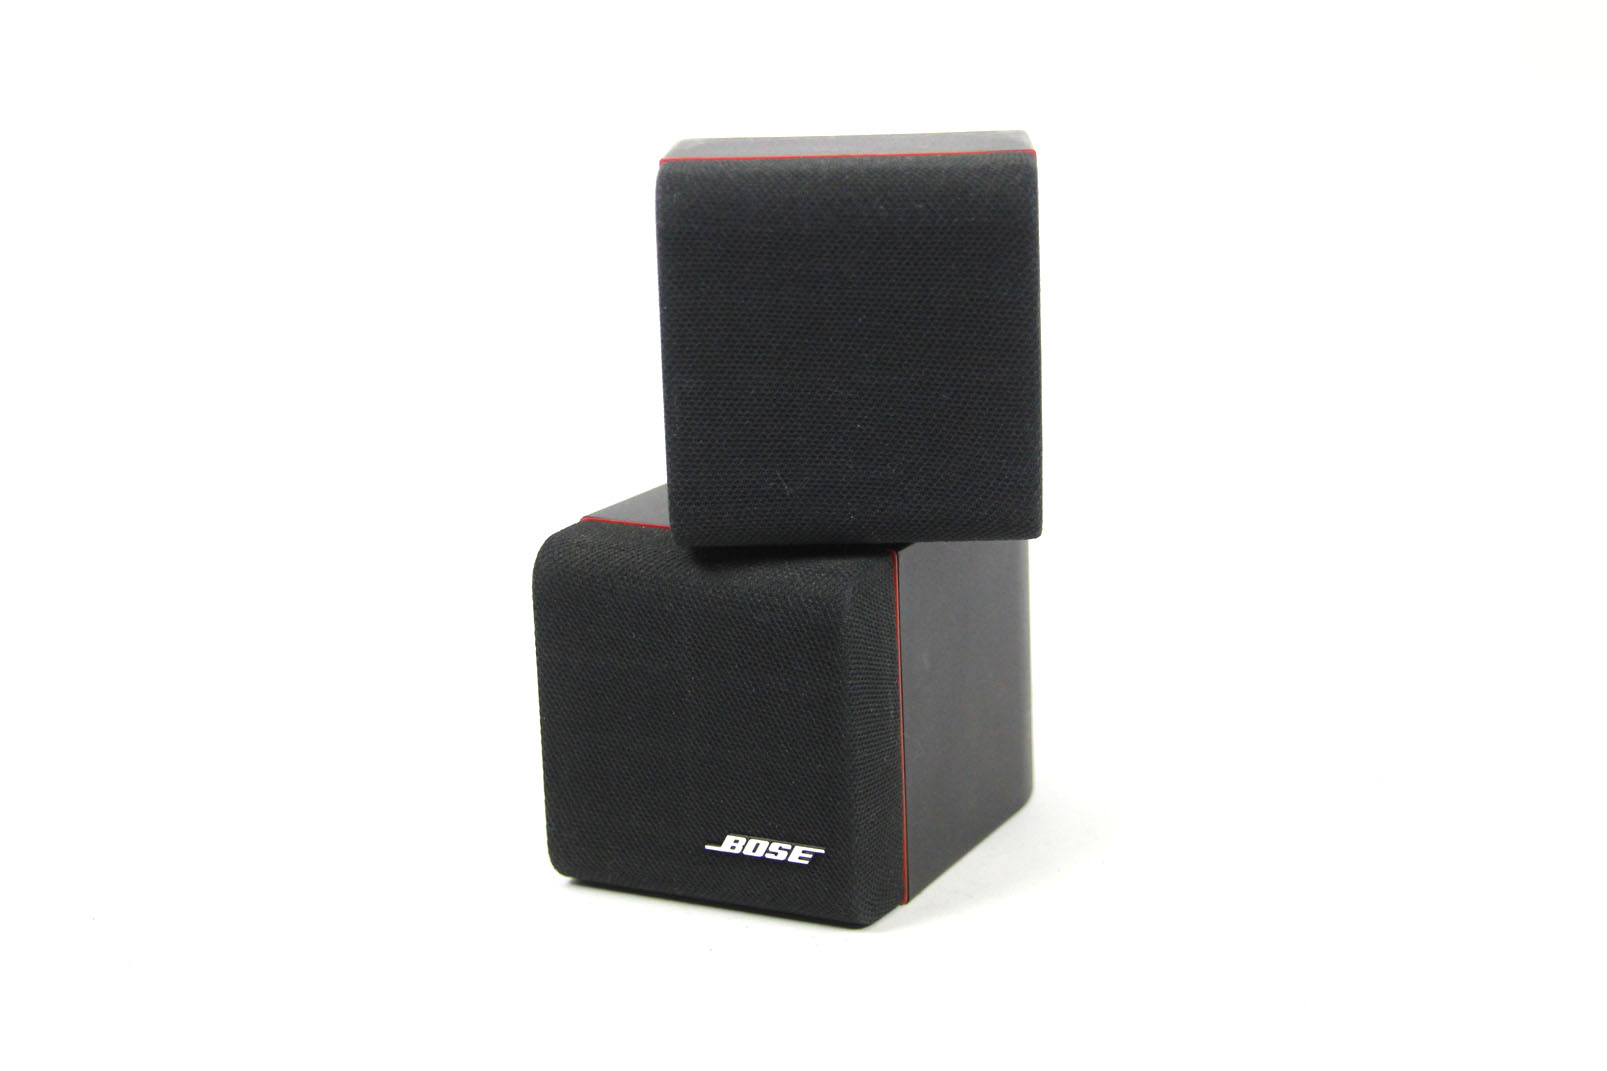 bose stereo lautsprecher acoustimass speaker doppel cube. Black Bedroom Furniture Sets. Home Design Ideas